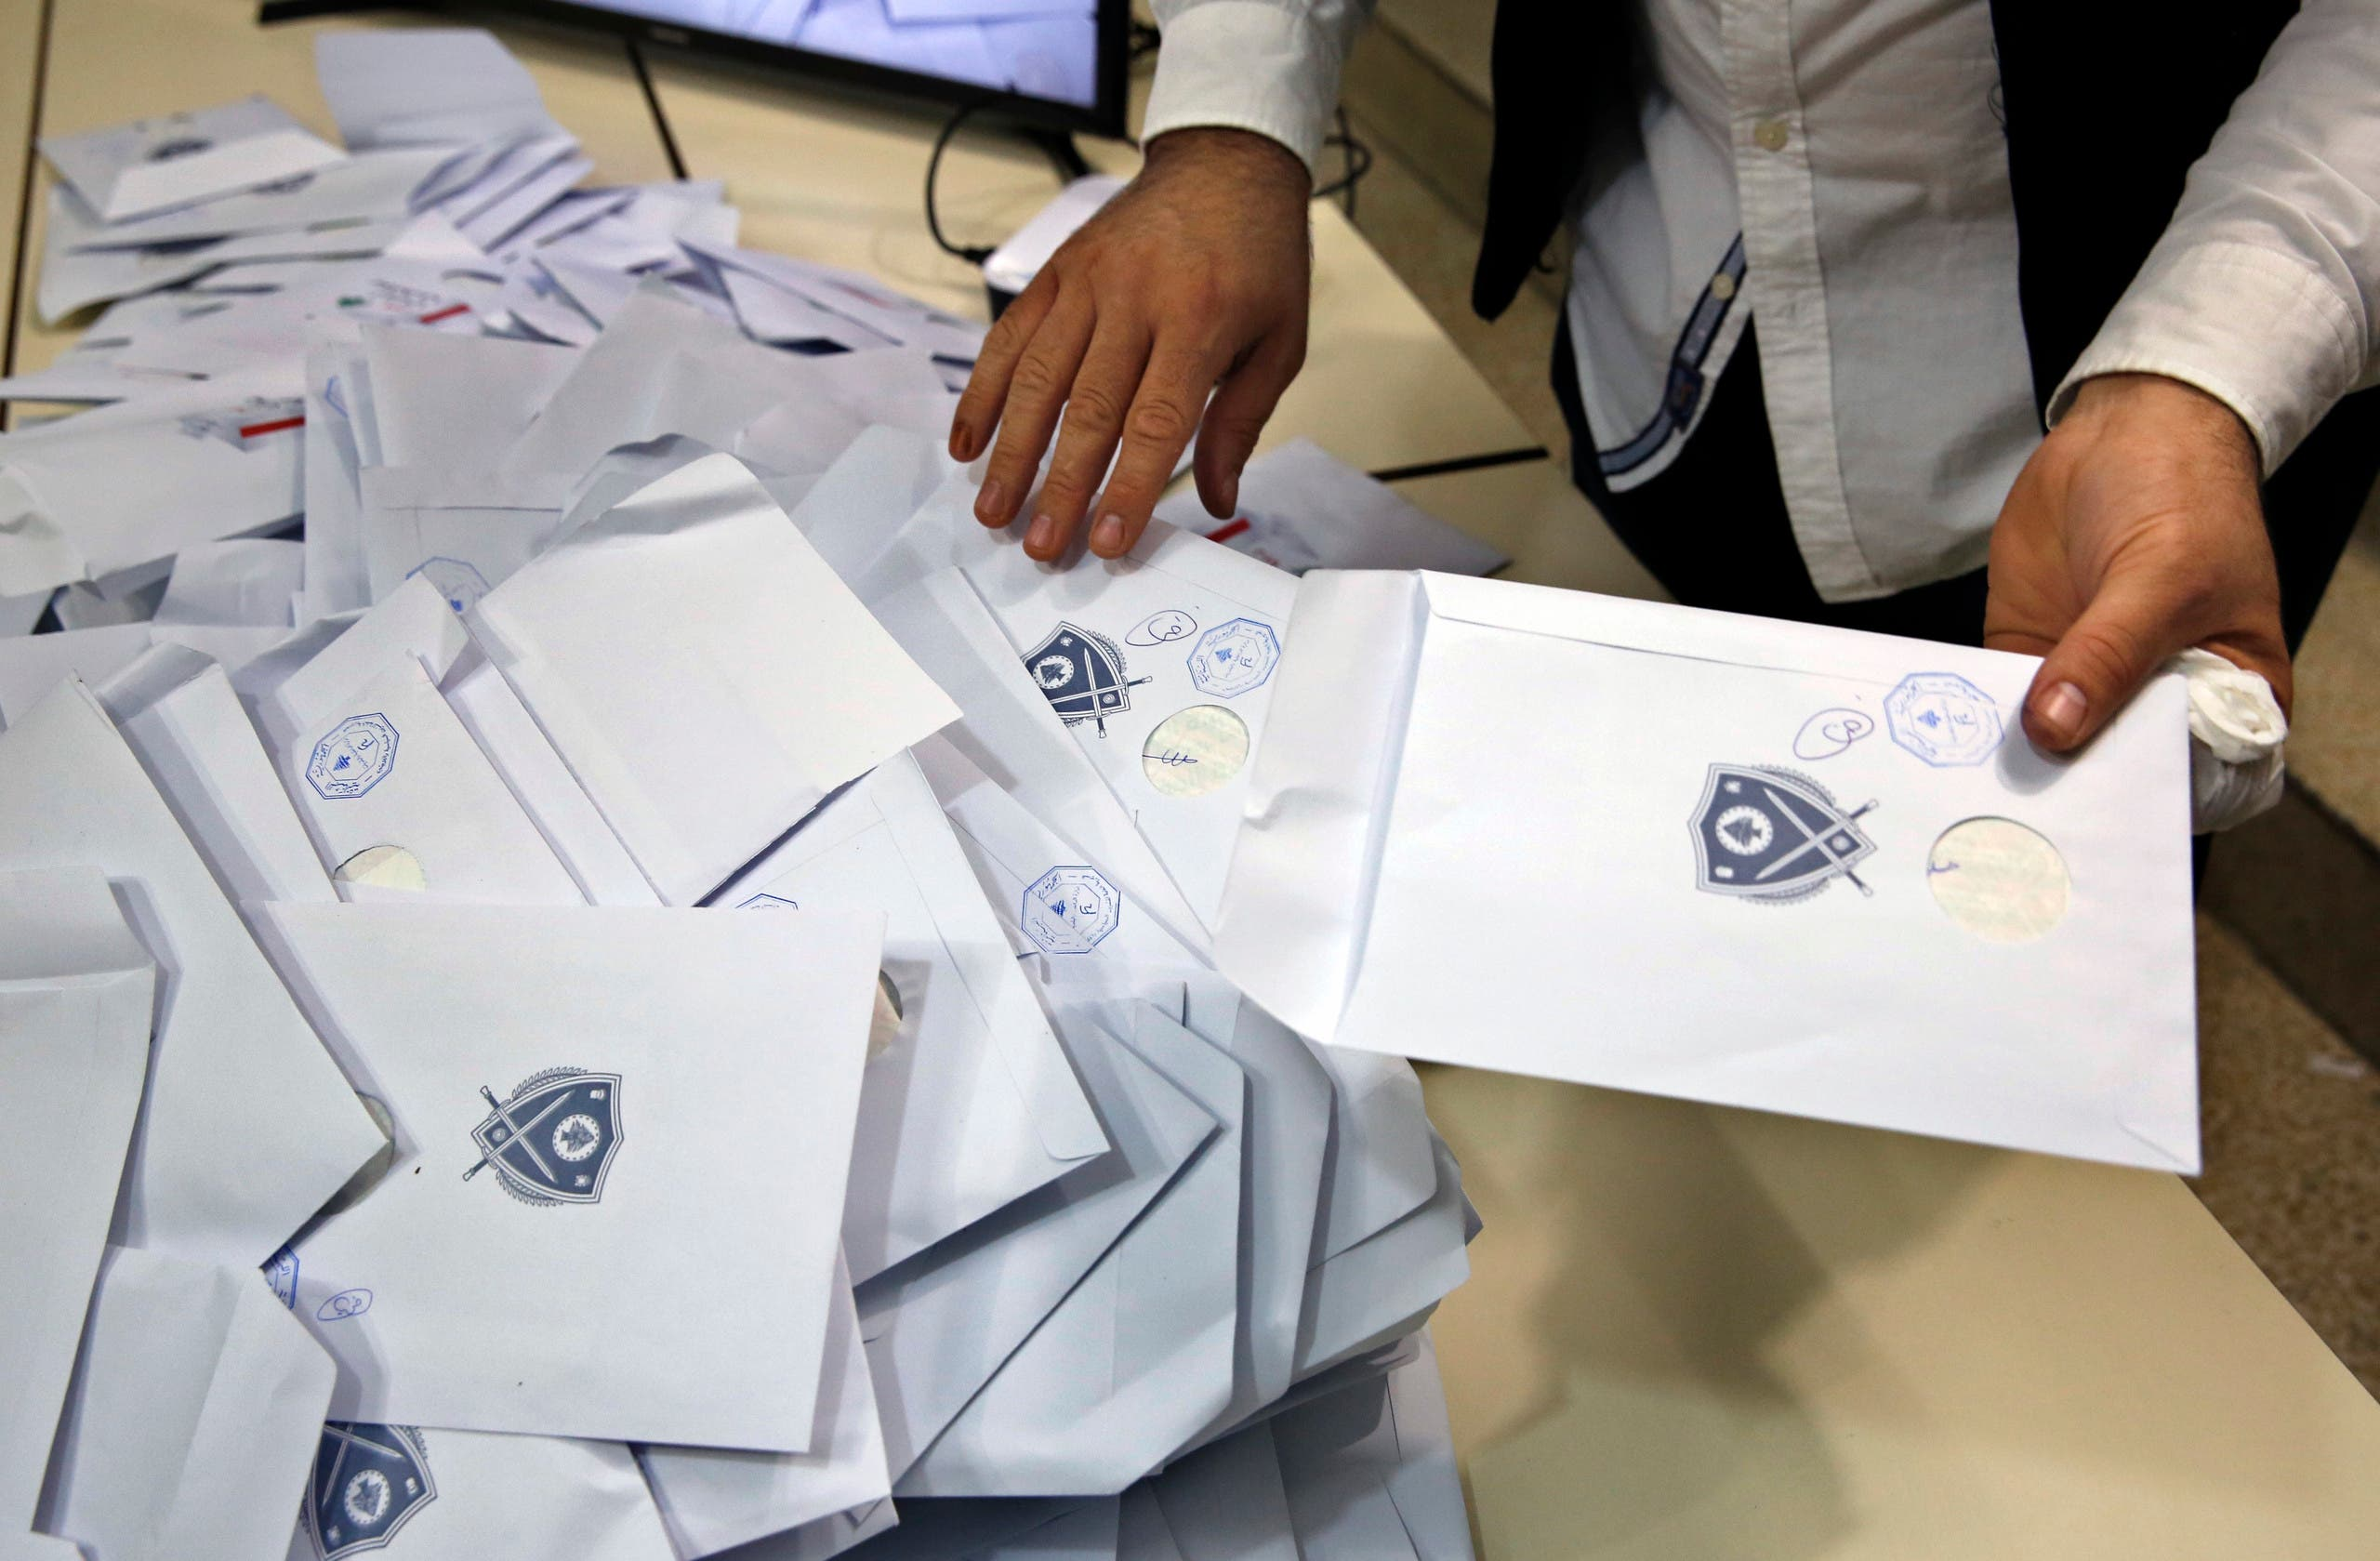 An election official counts ballots shortly after the polling stations closed, in Beirut, Lebanon, Sunday, May 6, 2018. (File photo: AP)